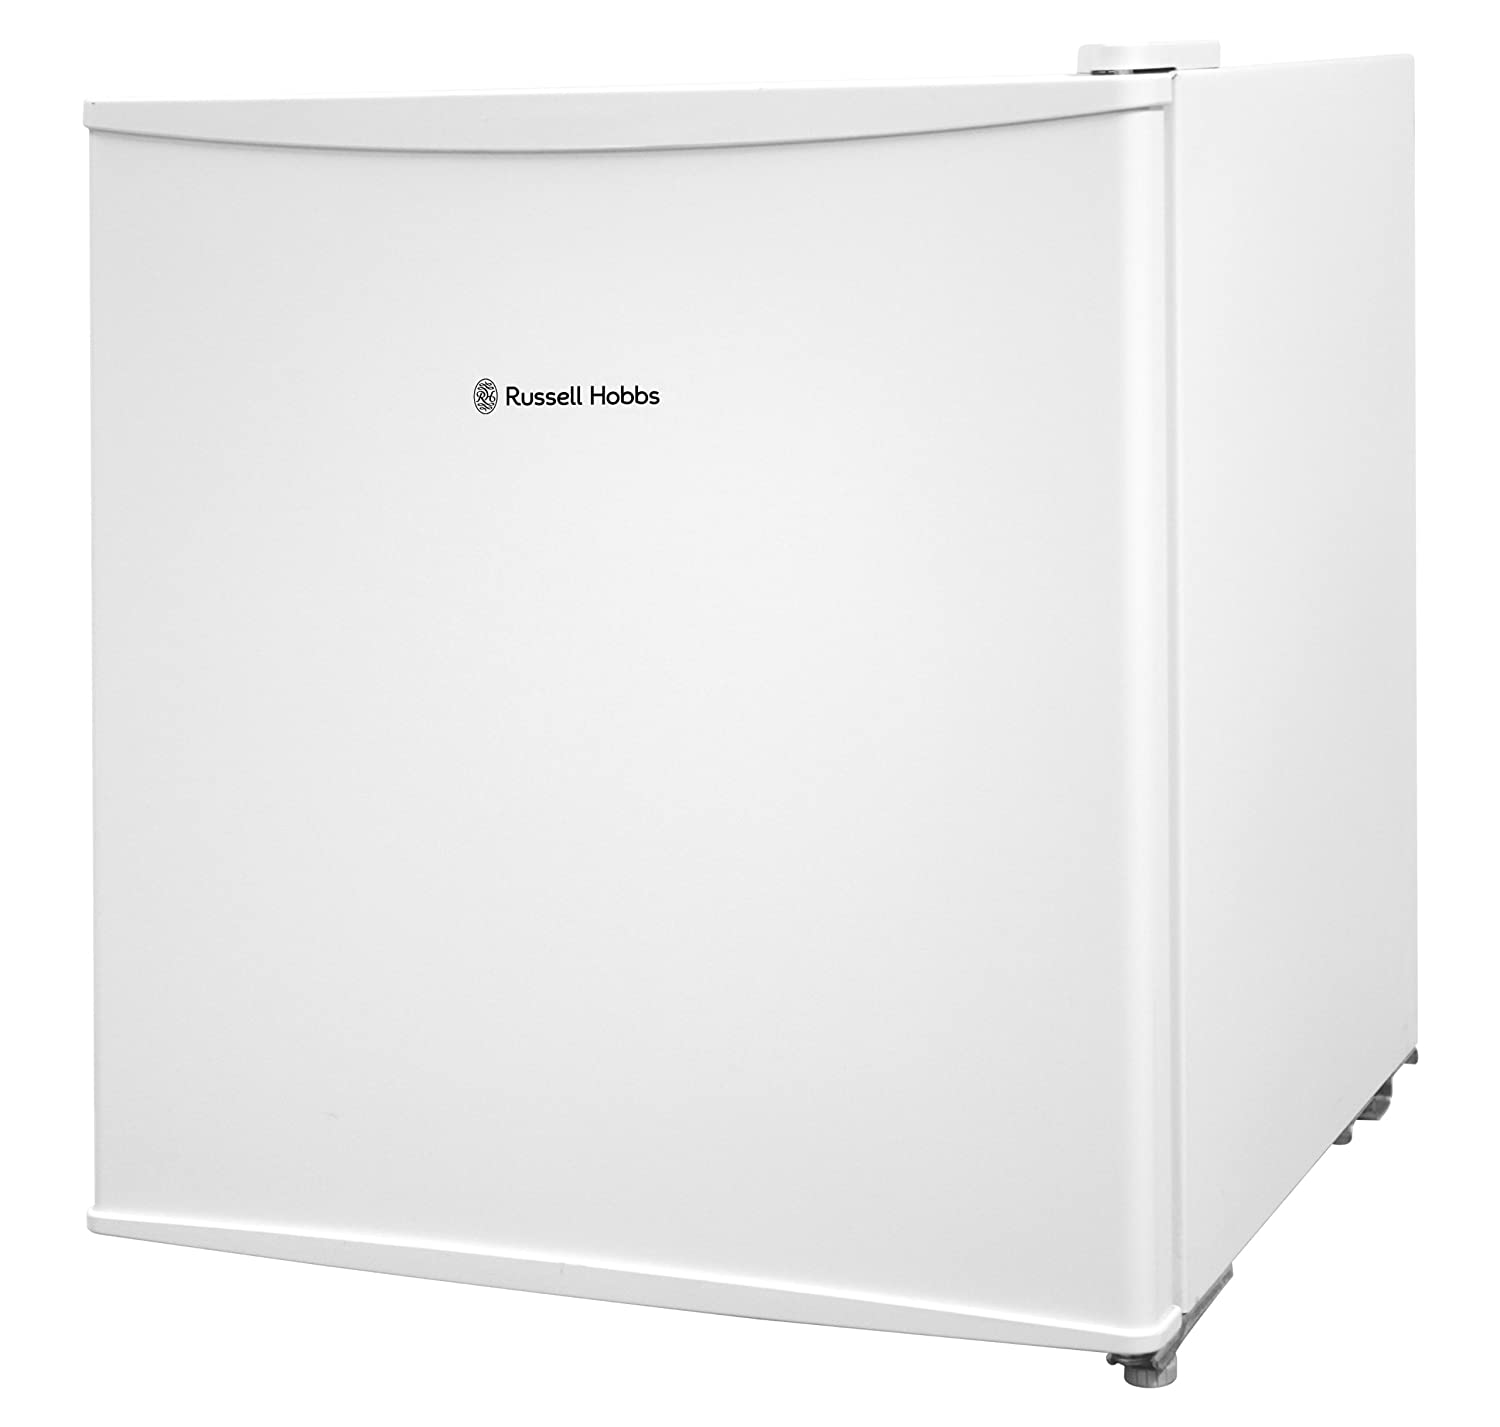 Russell Hobbs RHTTFZ1 32L Table Top A+ Energy Rating Freezer White [Energy Class A+]